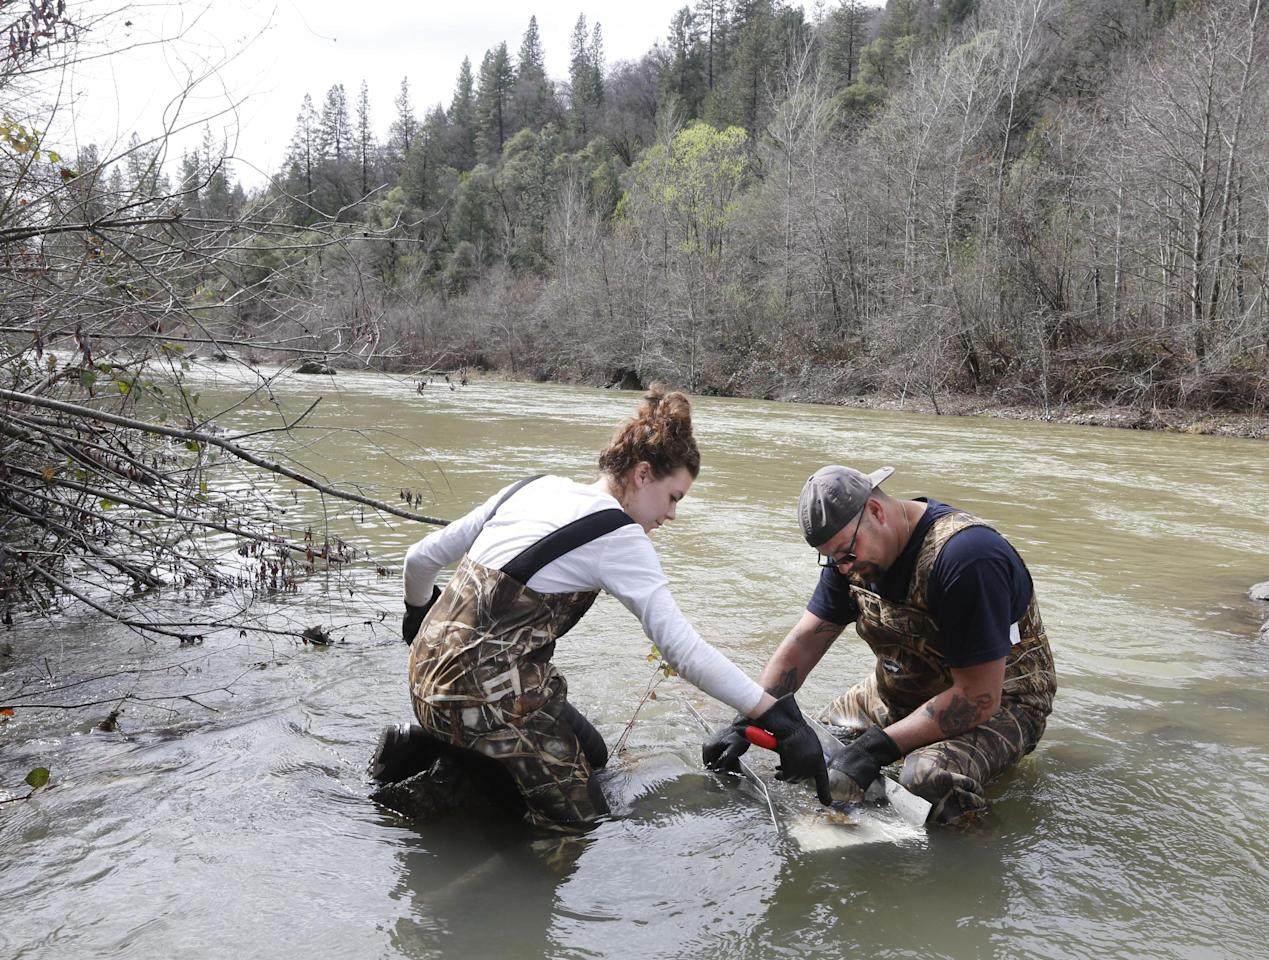 In this photo taken Tuesday, March 4, 2014 Tim Amavisca, 38, and his daughter Hailey, 15, use a sluice box that's used to trap gold flakes on a textured rubber mat as they search for gold along the Bear River near Colfax, Calif. Amavisca is among the amateur prospectors that have flocked to the Sierra Nevada foothills that, due to the historic drought, are taking advantage of the lower water levels to search for gold in riverbeds that have been unreachable for decades.(AP Photo/Rich Pedroncelli)